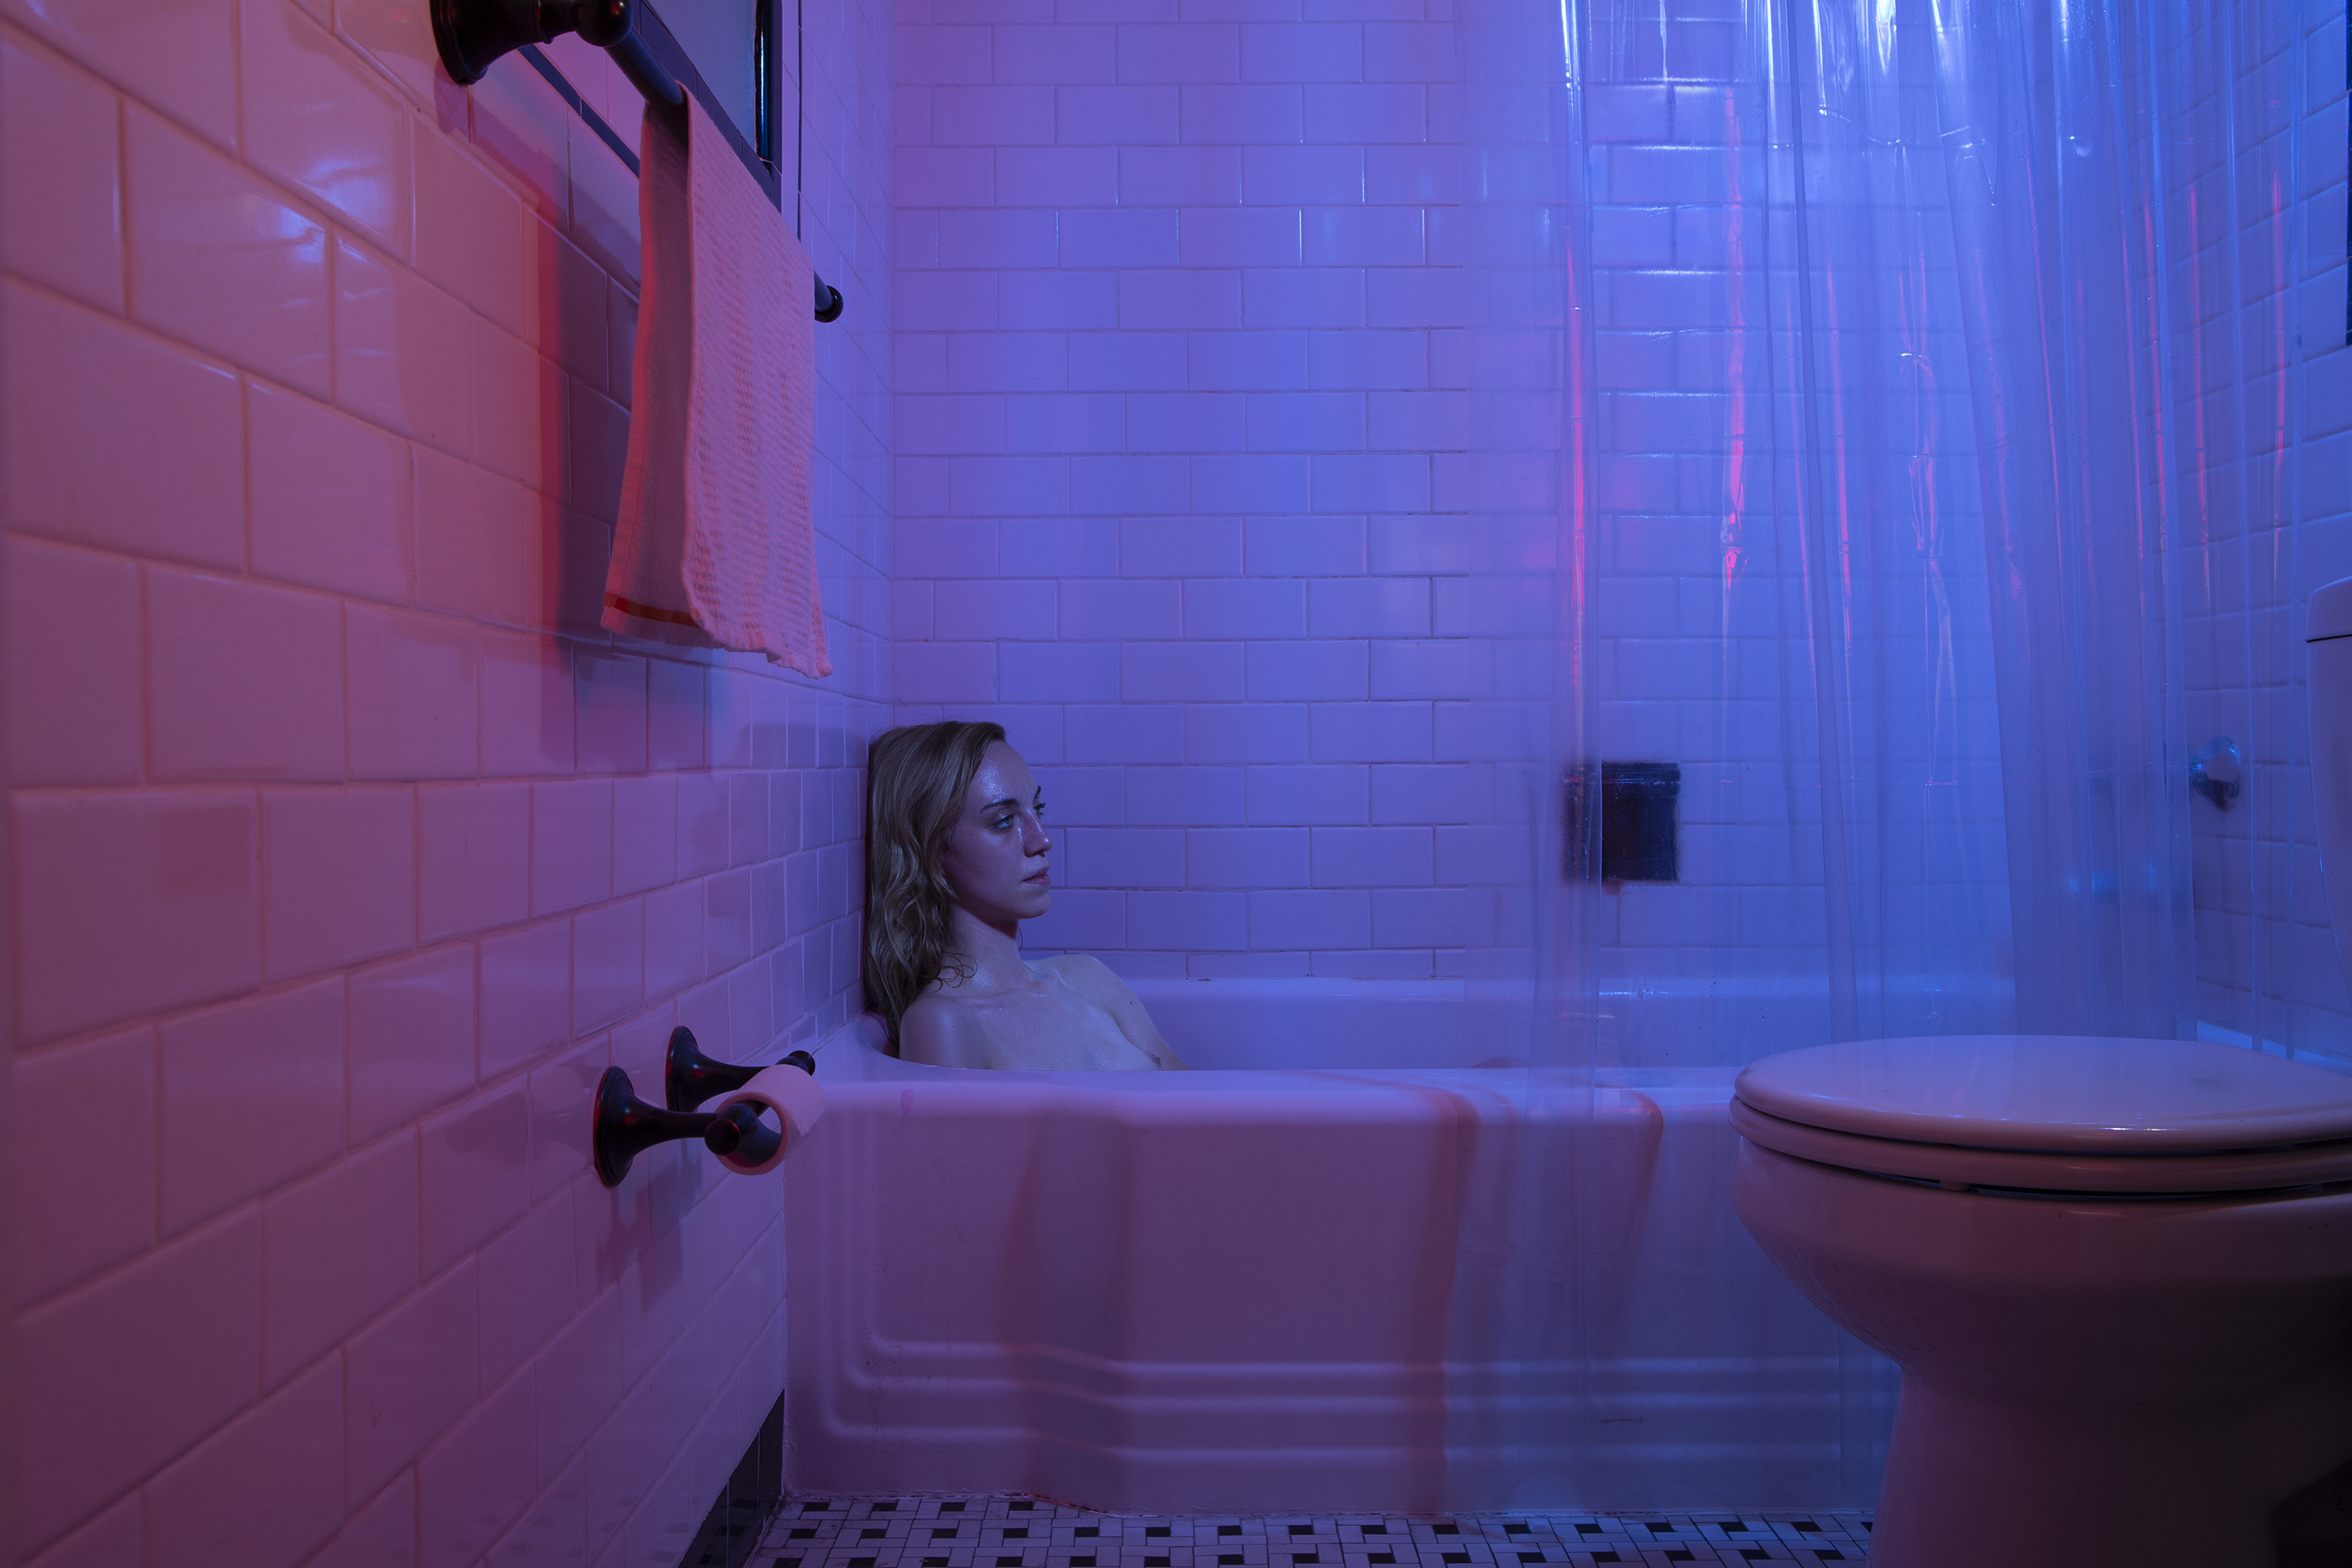 Woman sitting in bath tub